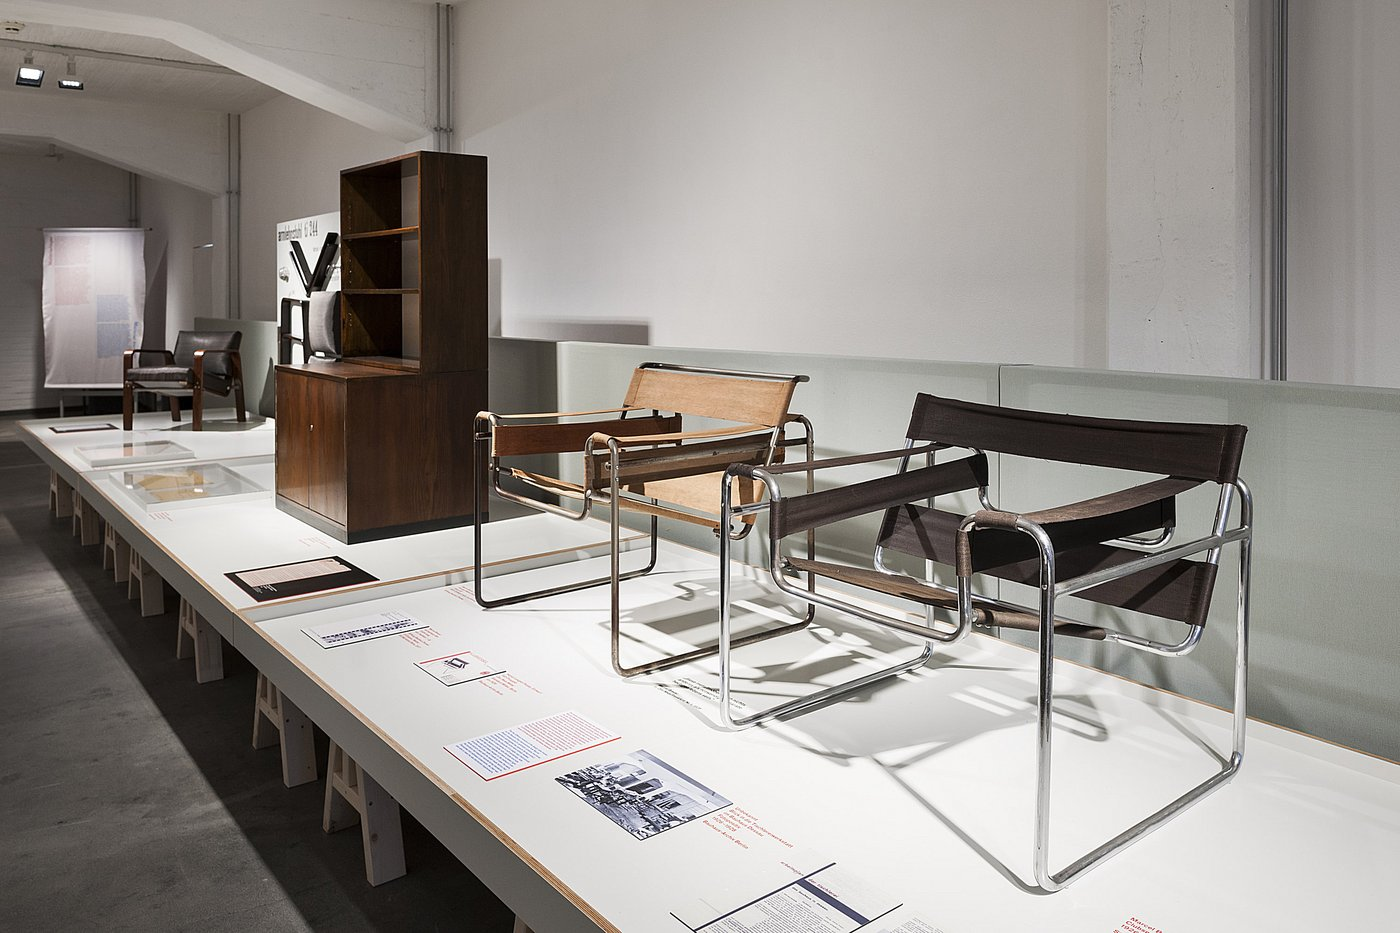 Bauhaus Modern Craft Becomes Modern The Bauhaus In The Making Exhibitions